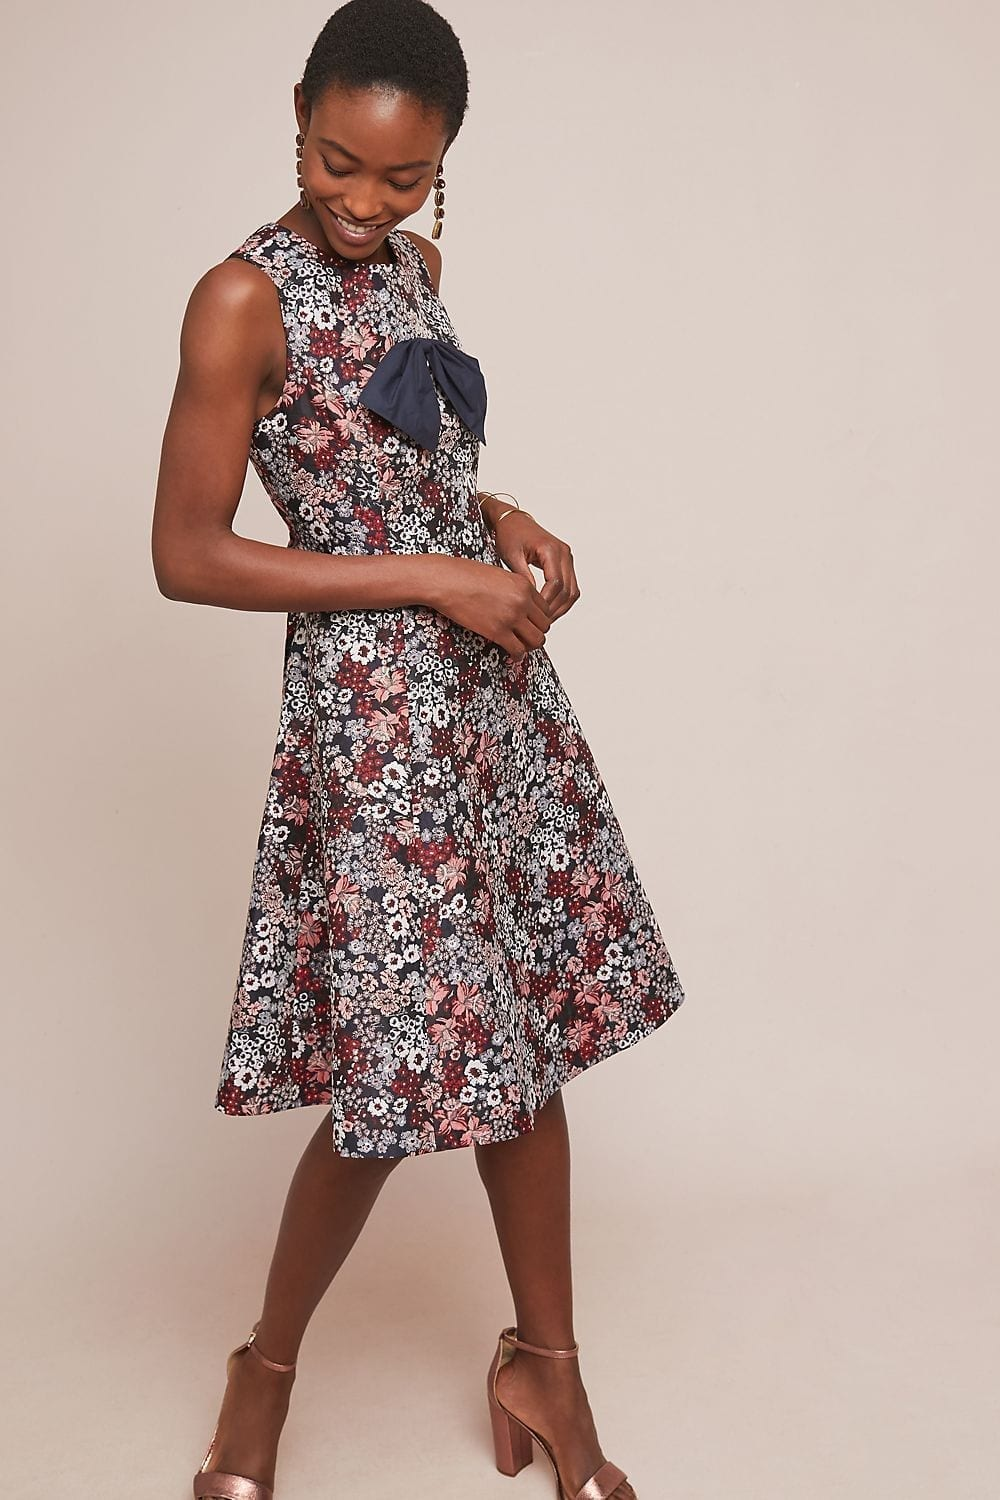 07f93514680 ANTHROPOLOGIE Bow-Tied Red   Floral Printed Dress - We Select Dresses